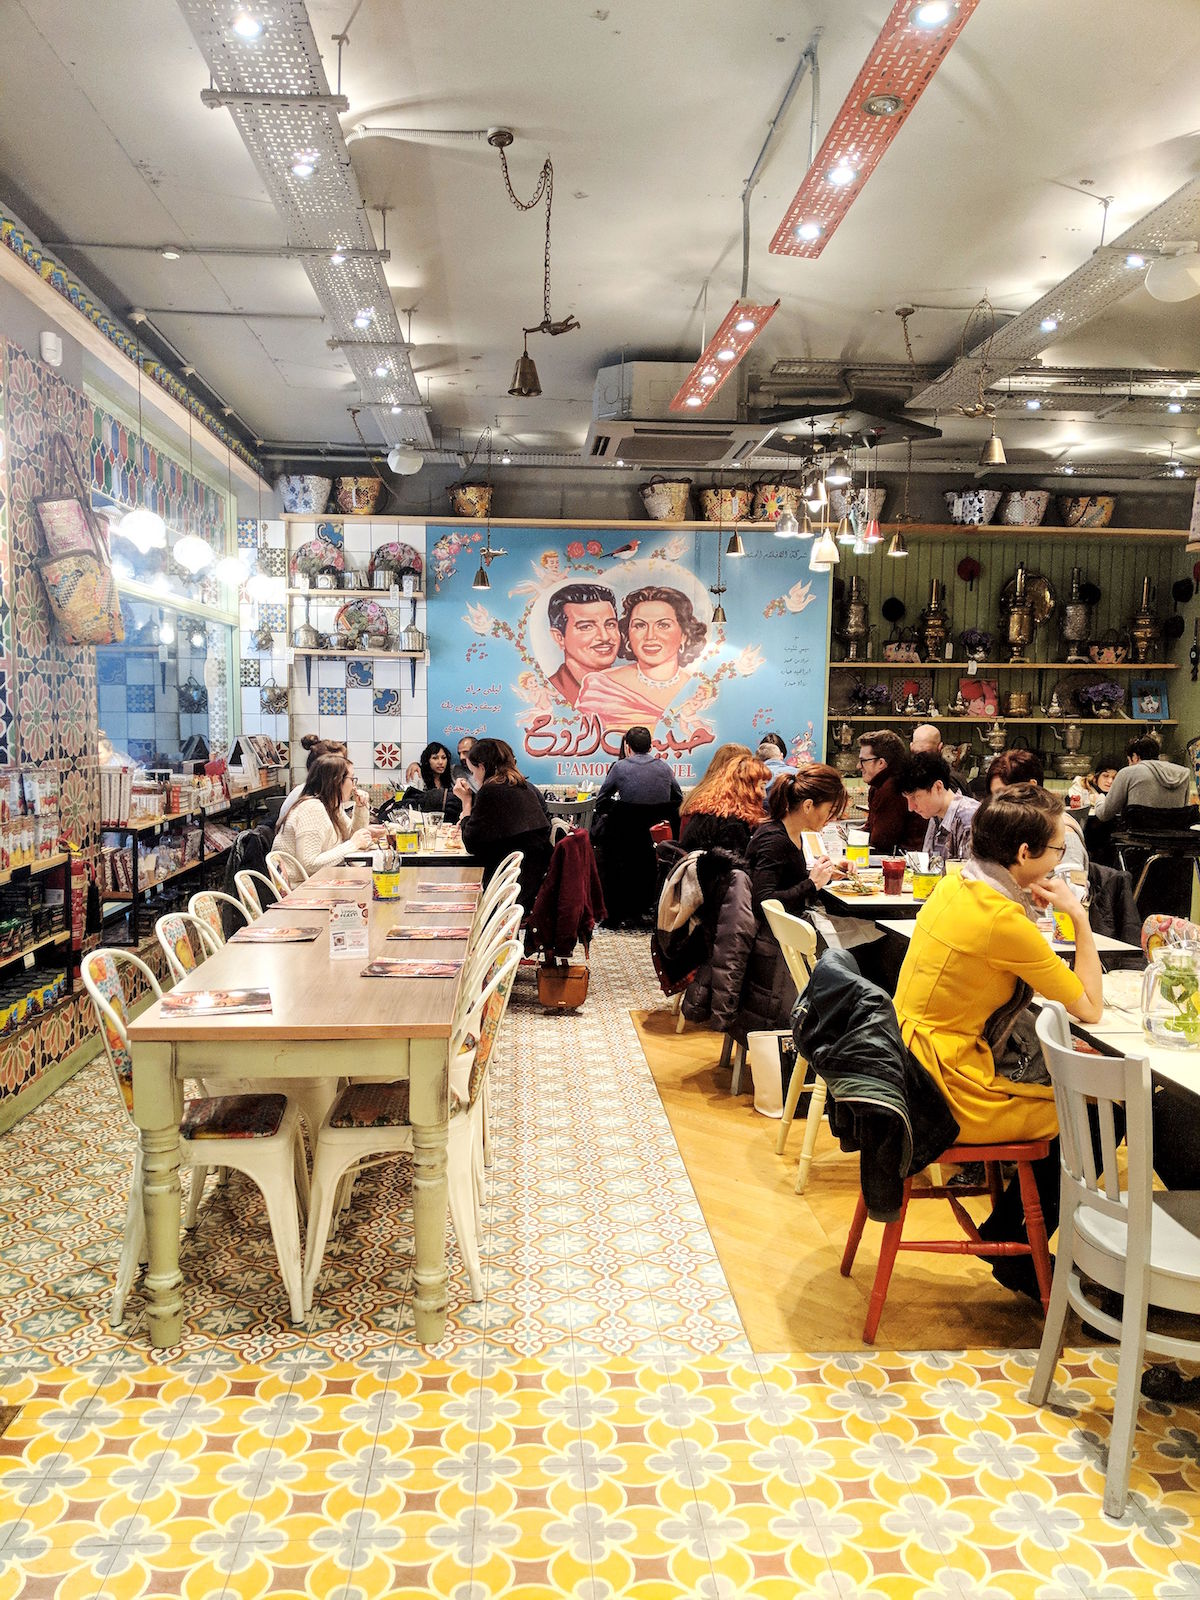 The vibrant interiors of the Comptoir Libanais in Soho